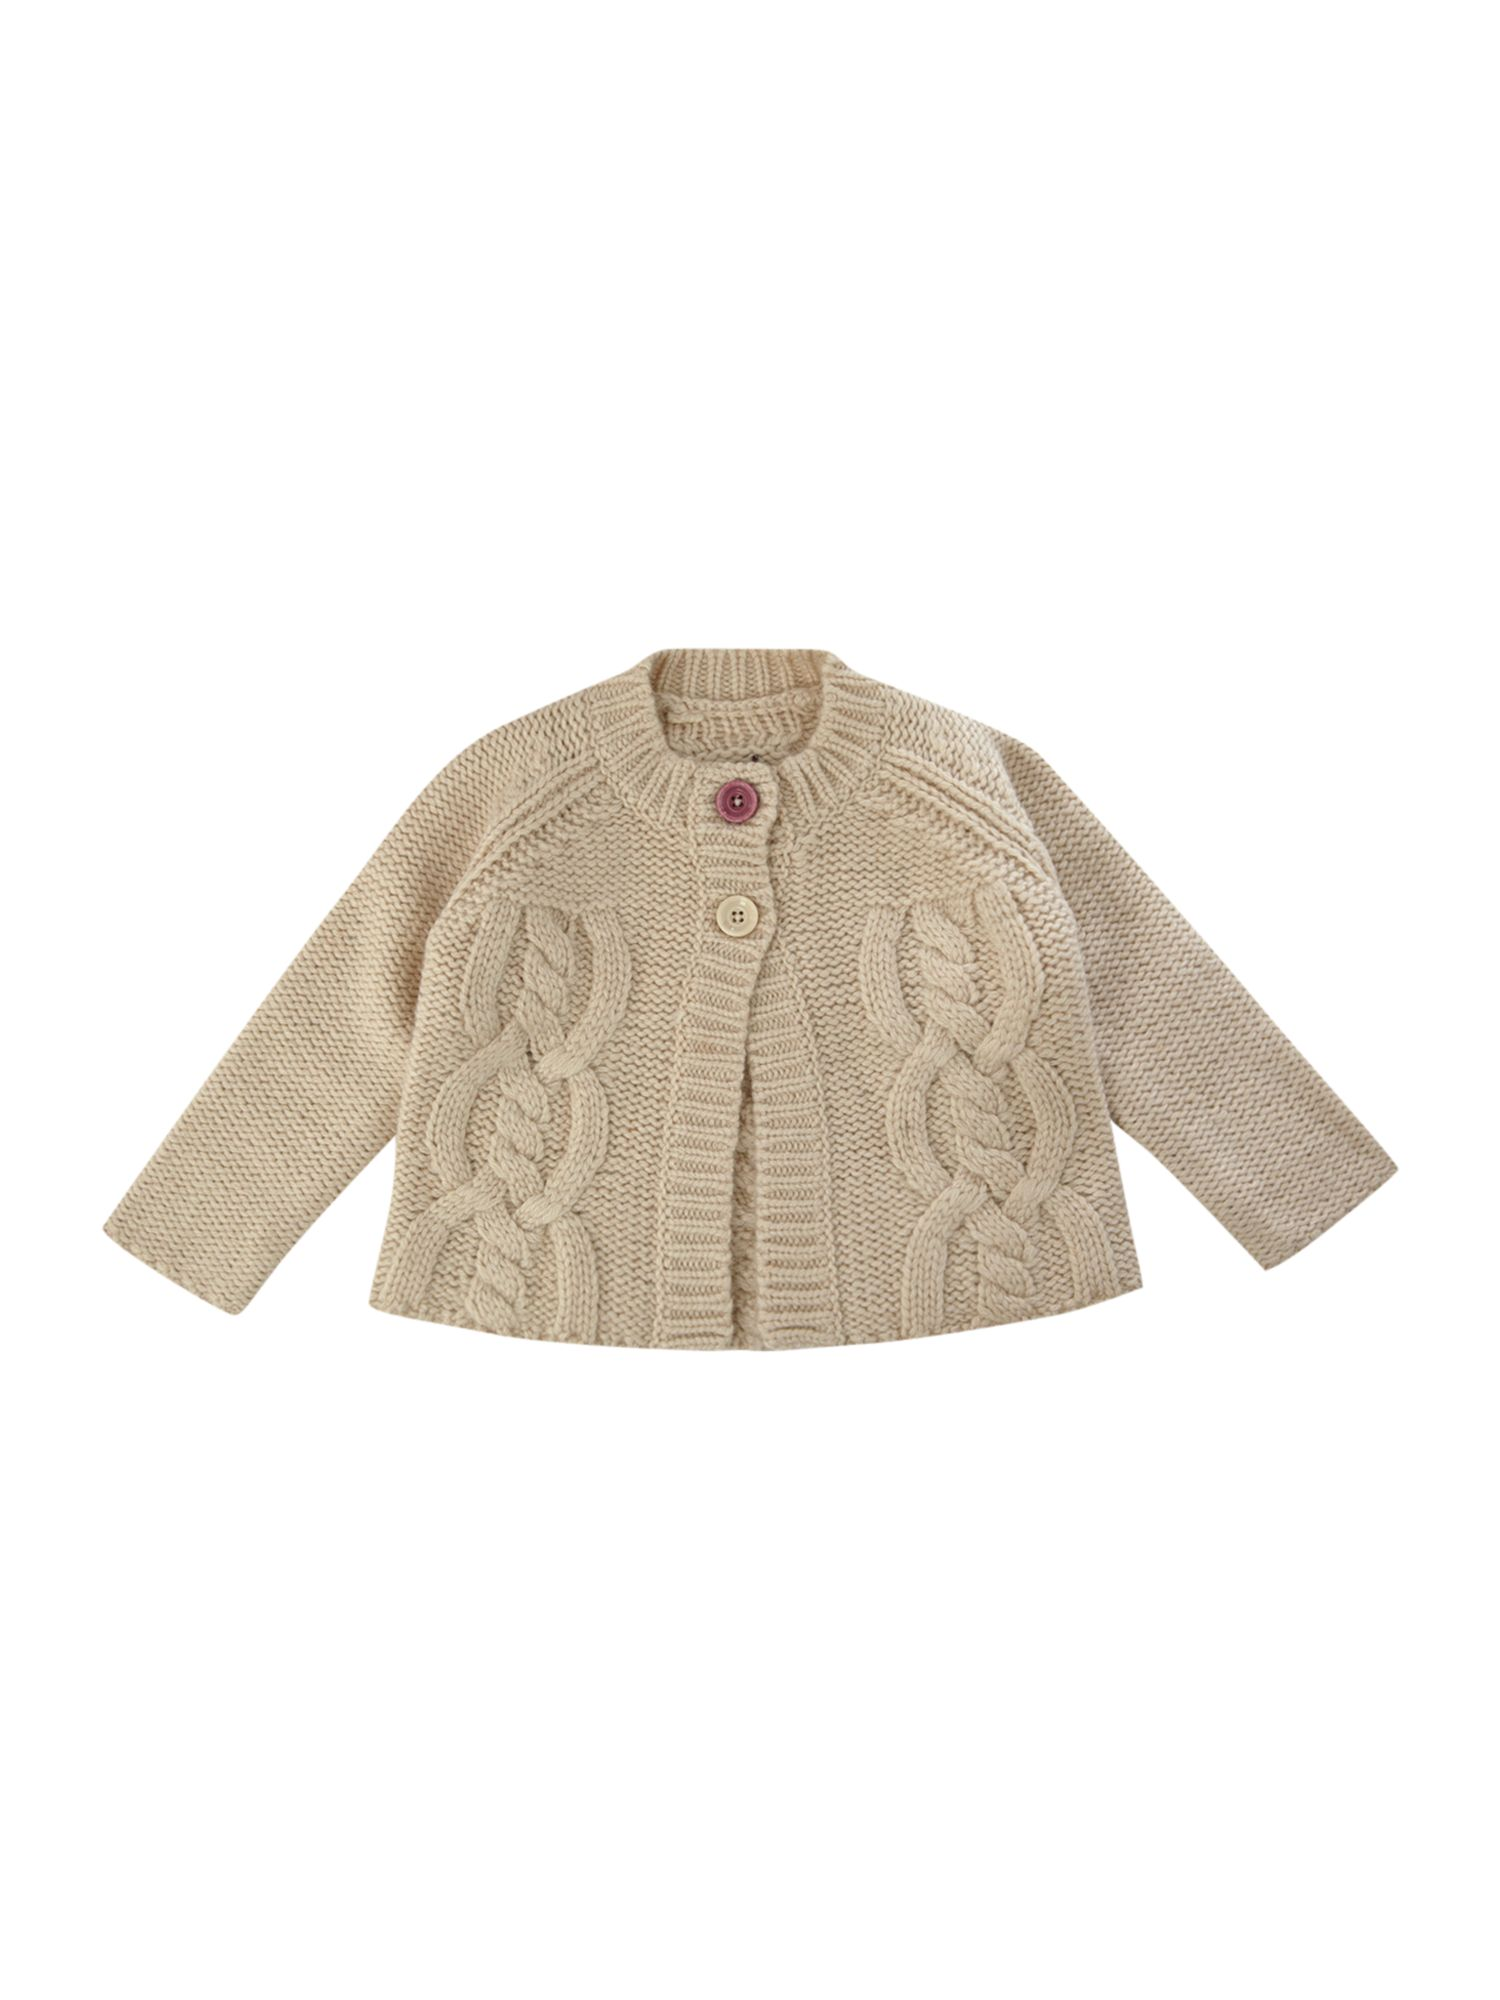 Baby cable knitted cardigan